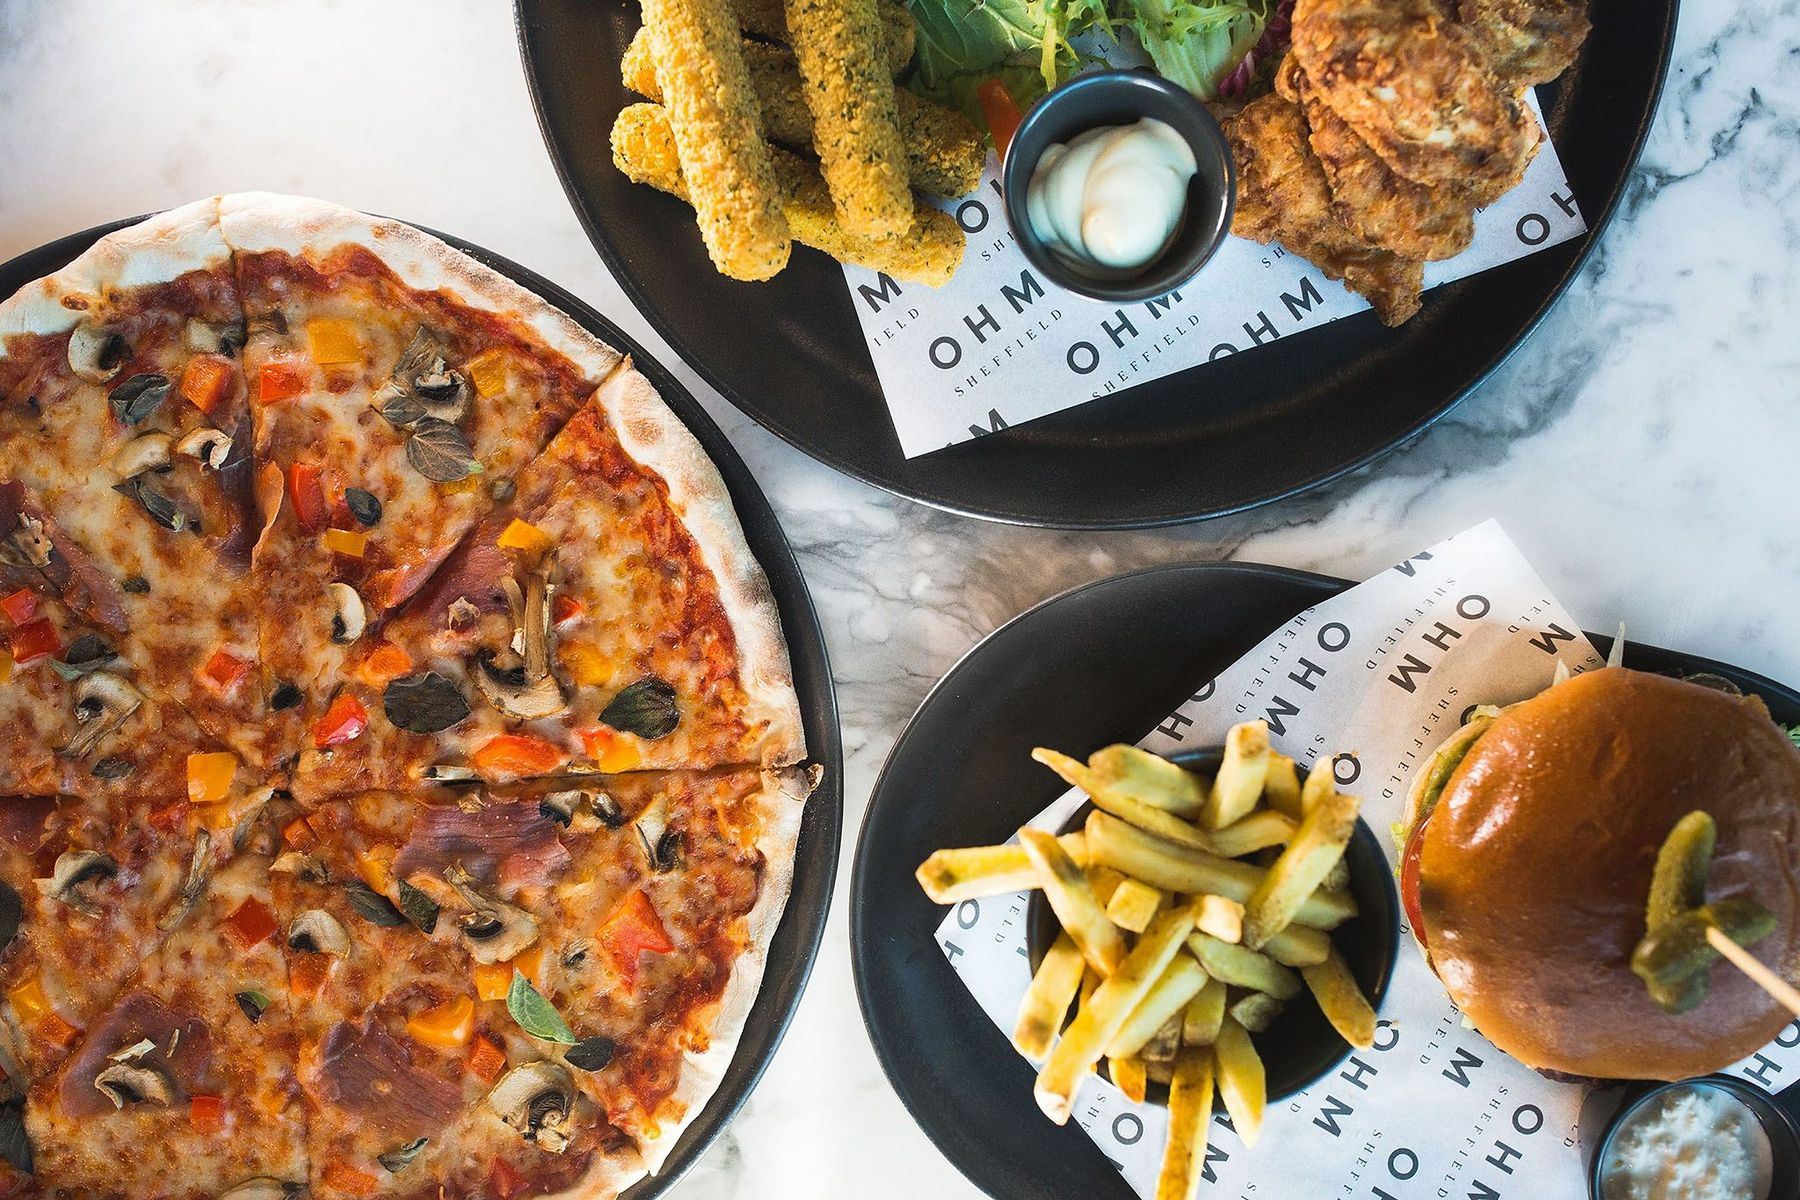 Dining Deals Every Weeknight At Ohm